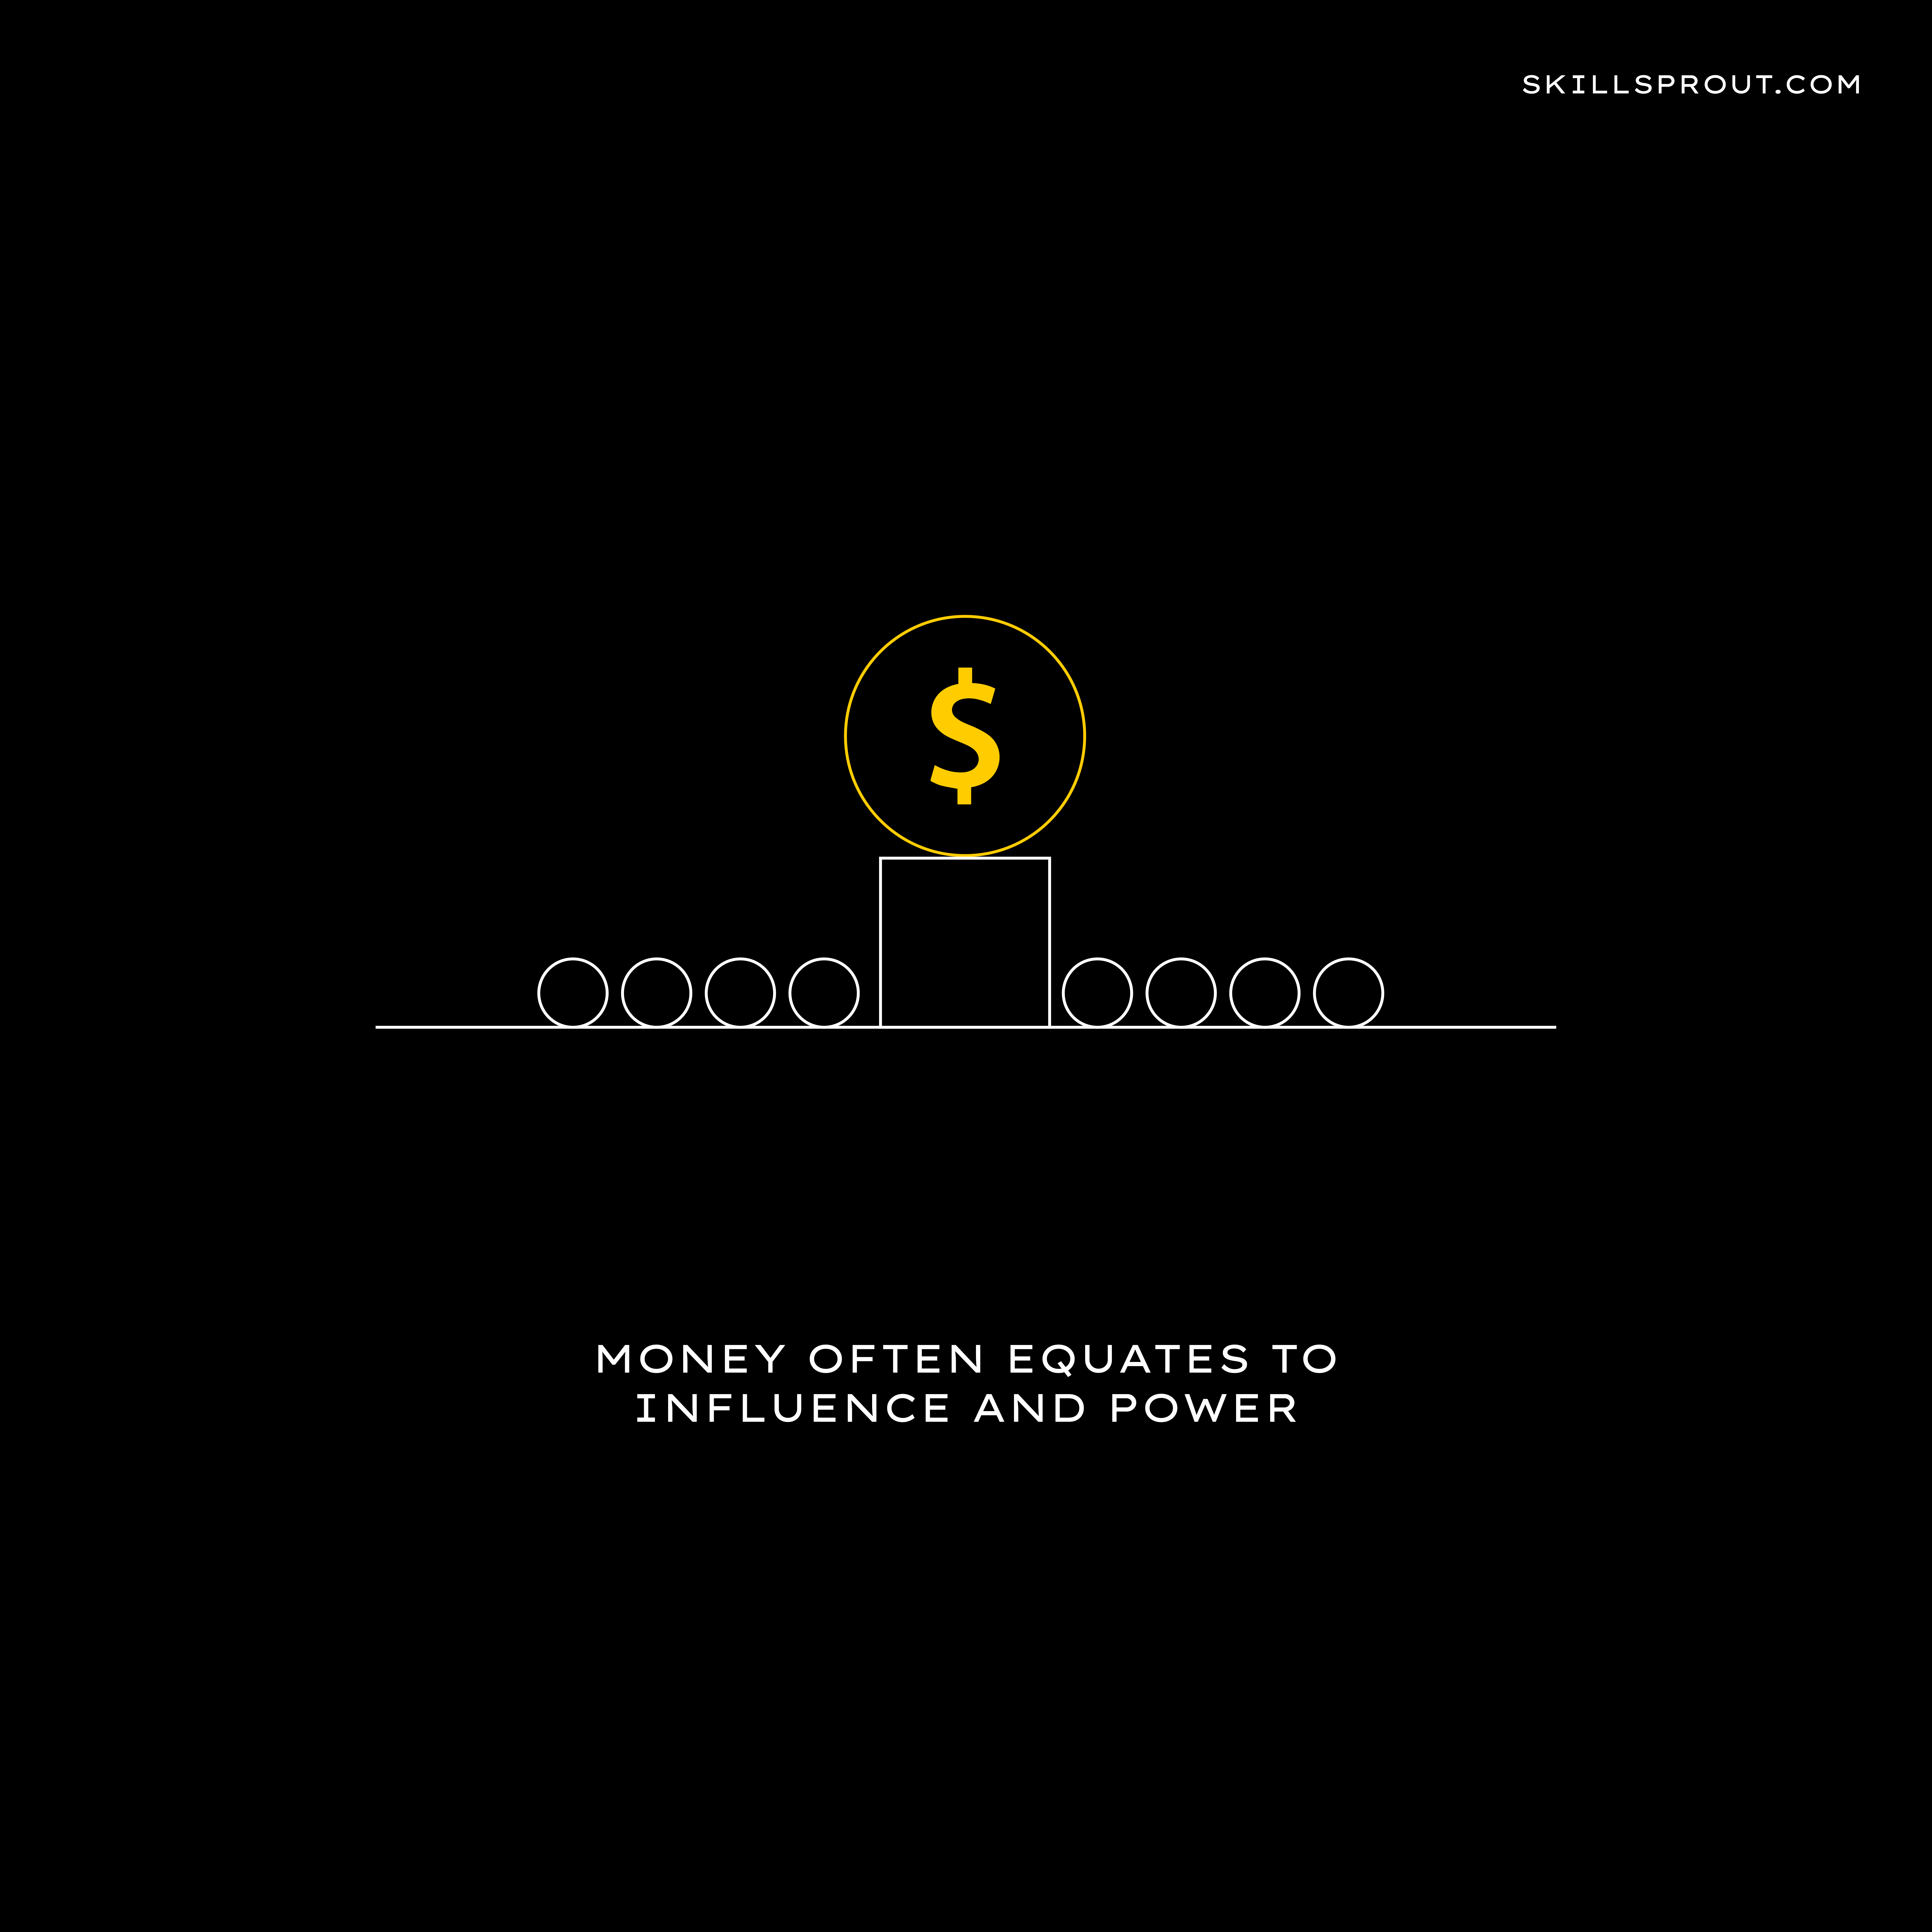 Money often equates to influence and power.